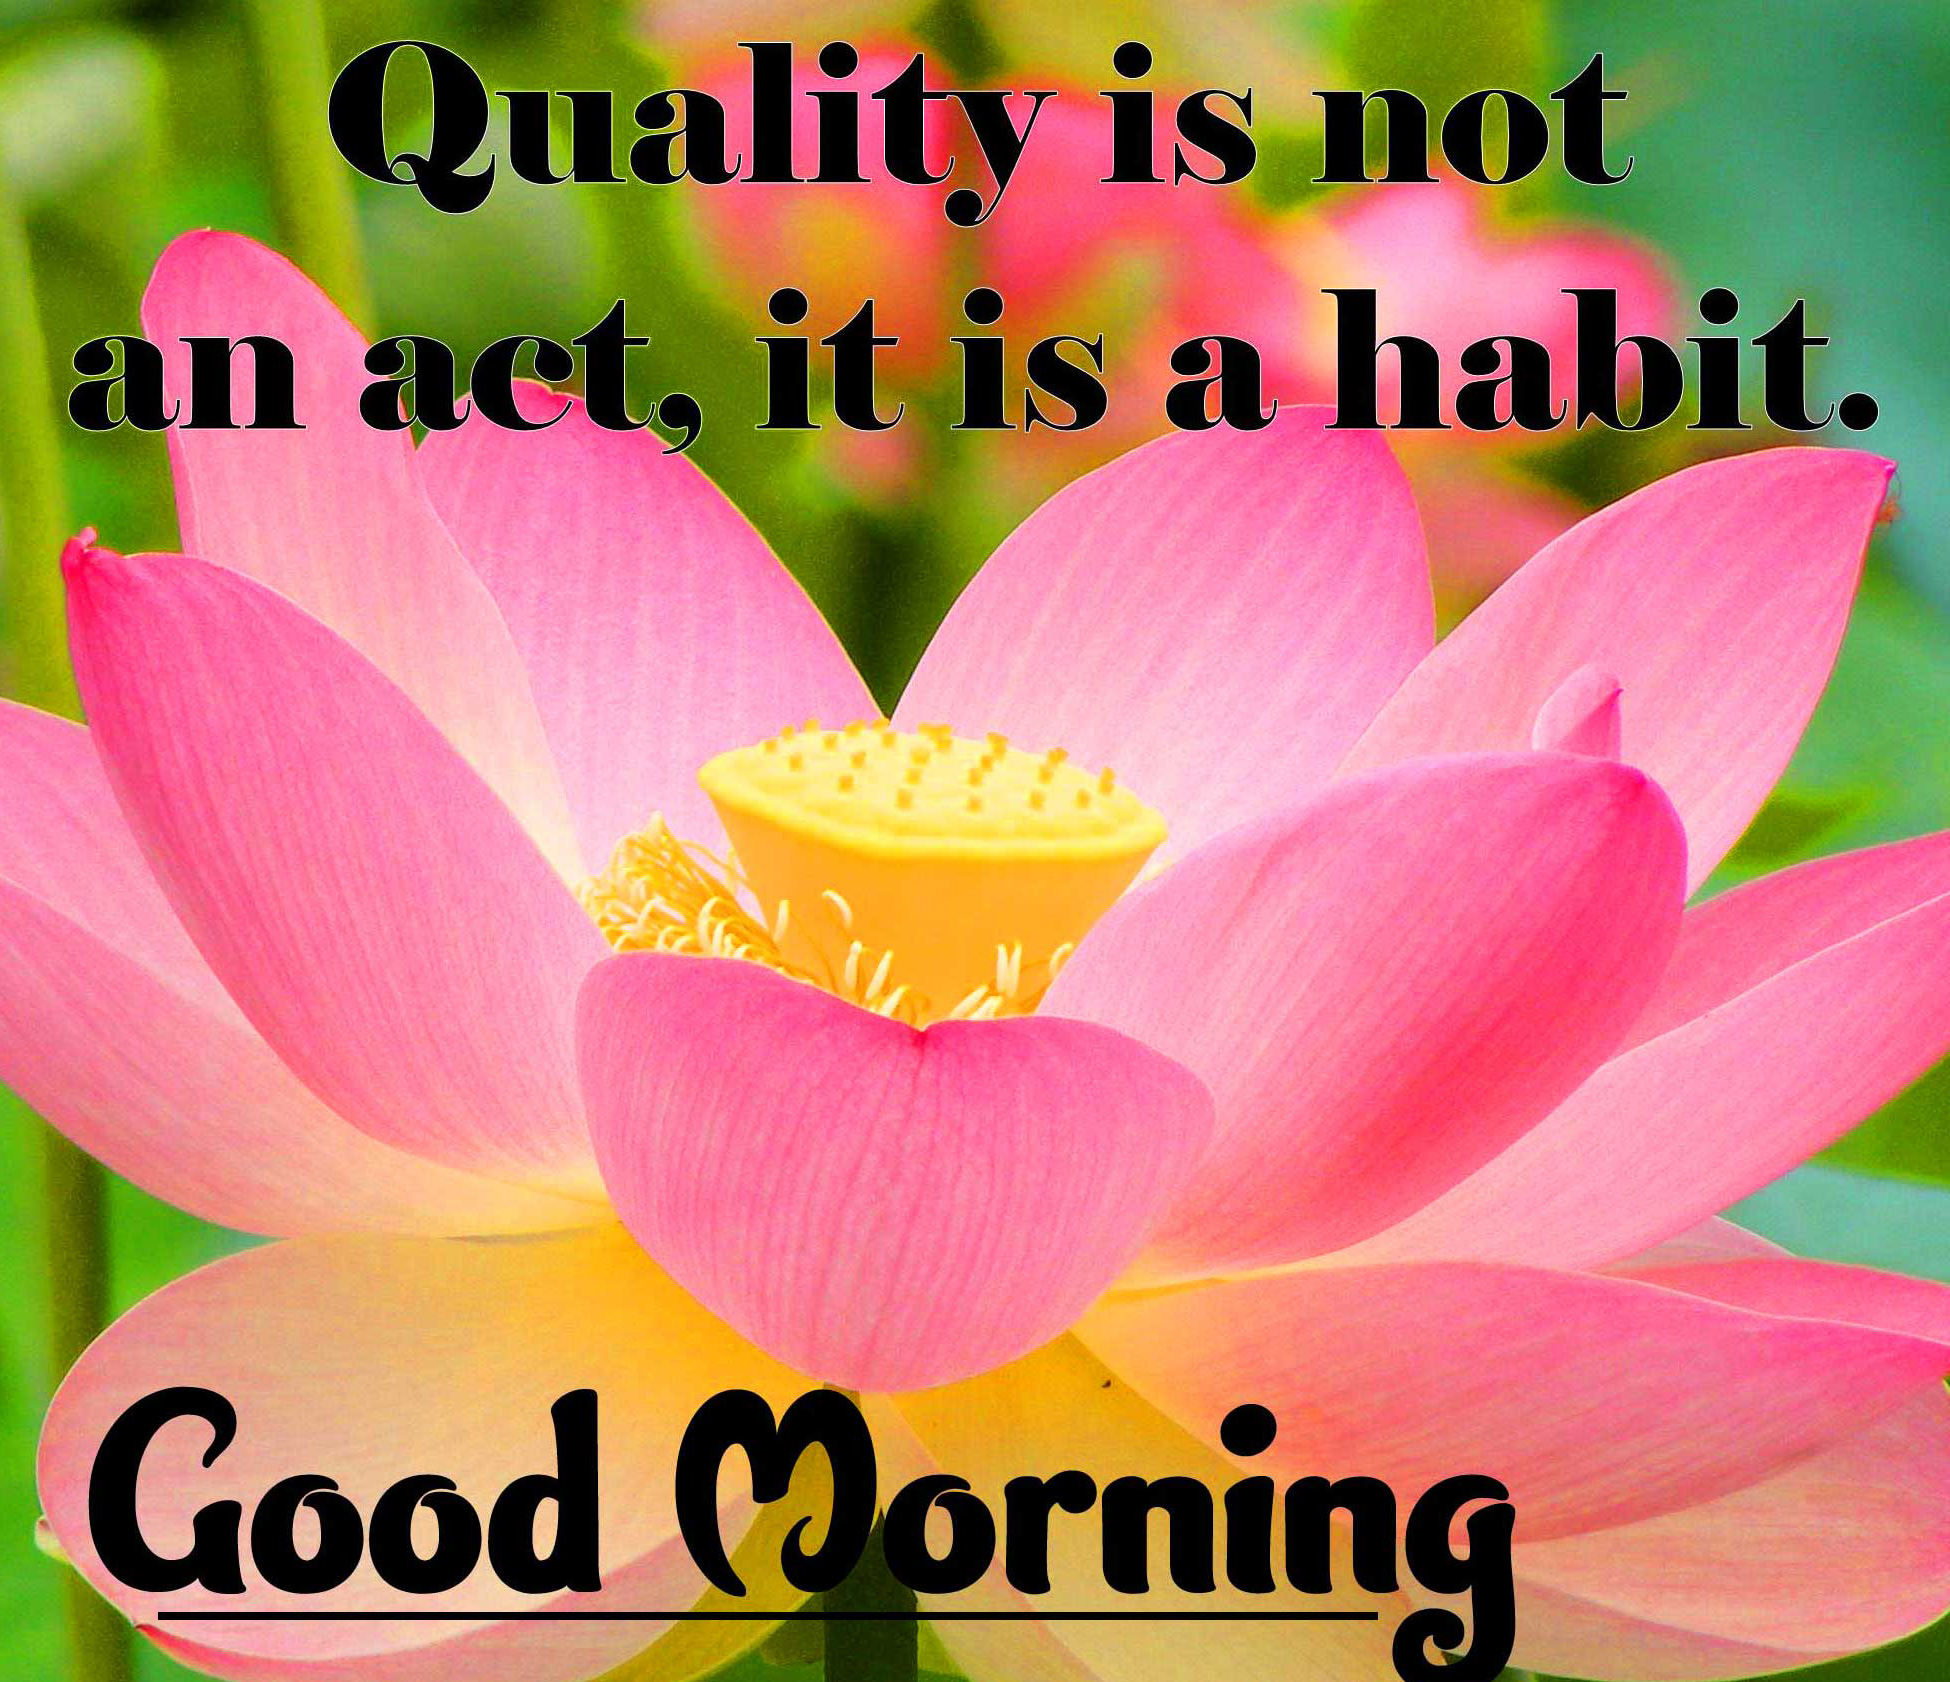 Good Morning Wishes Images with positive thoughts Pics Free Latest